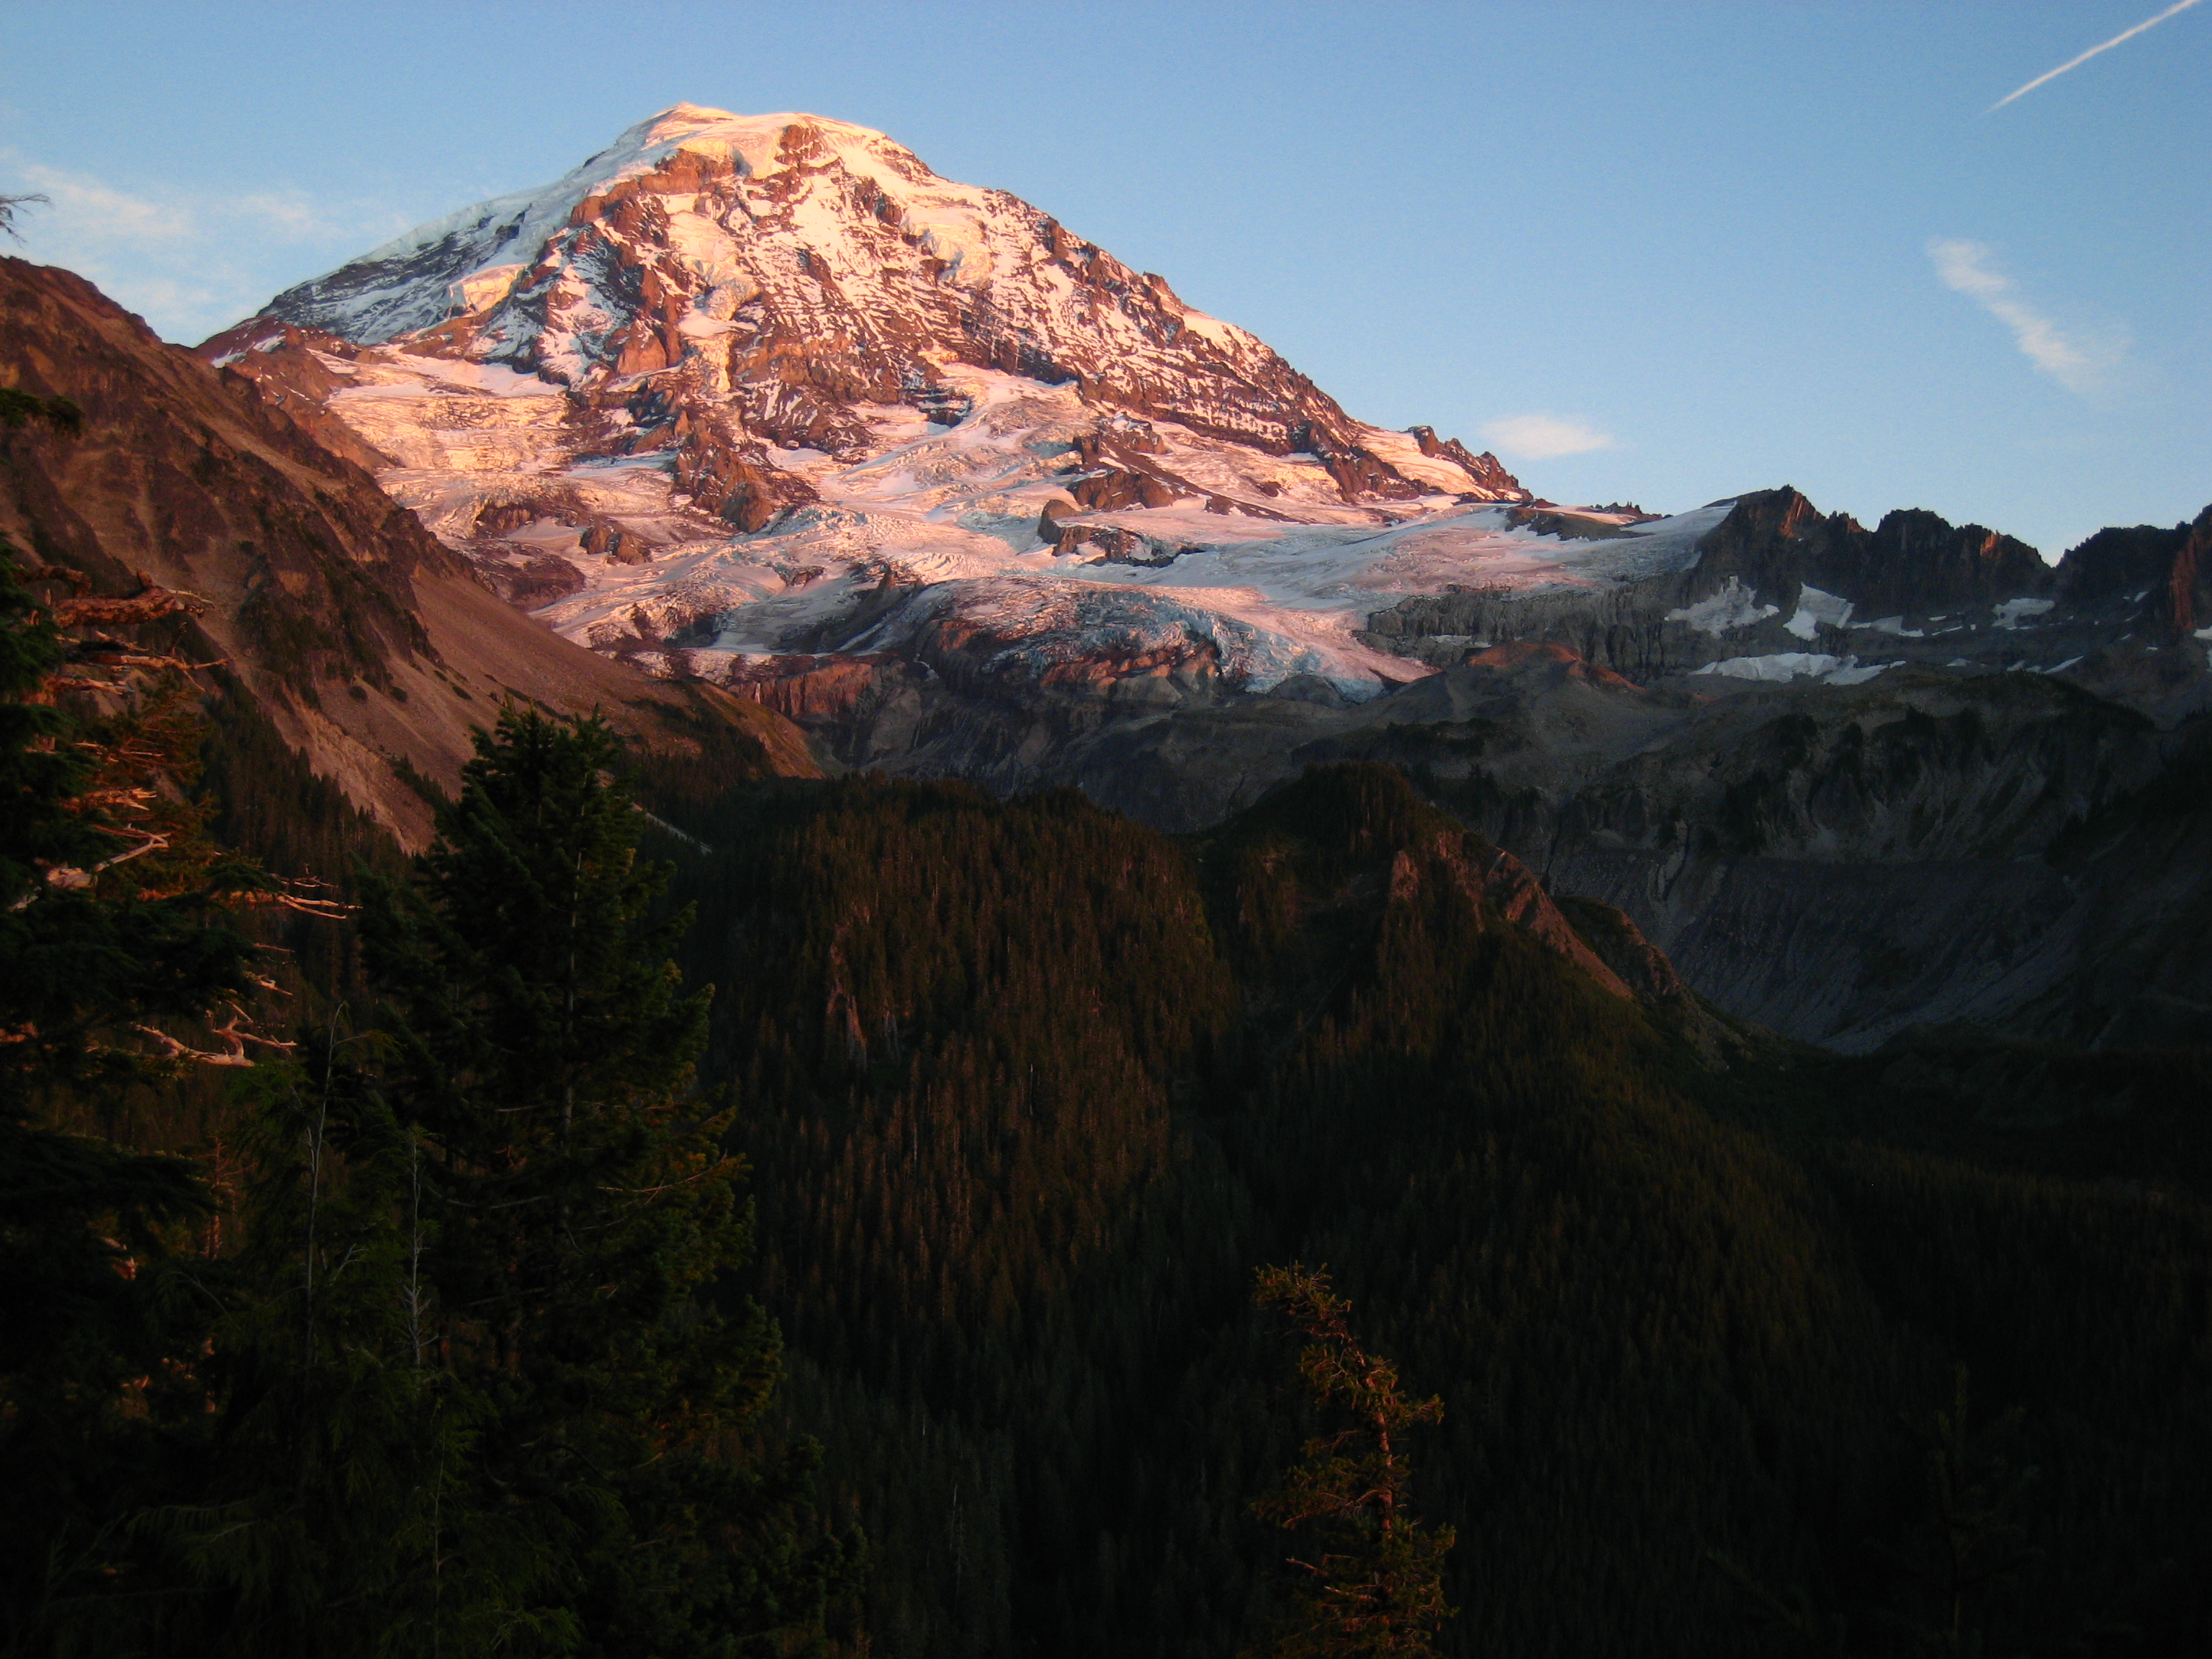 A short drive from Seattle, Mt Rainier National Park is a great day trip or multi-day trip.